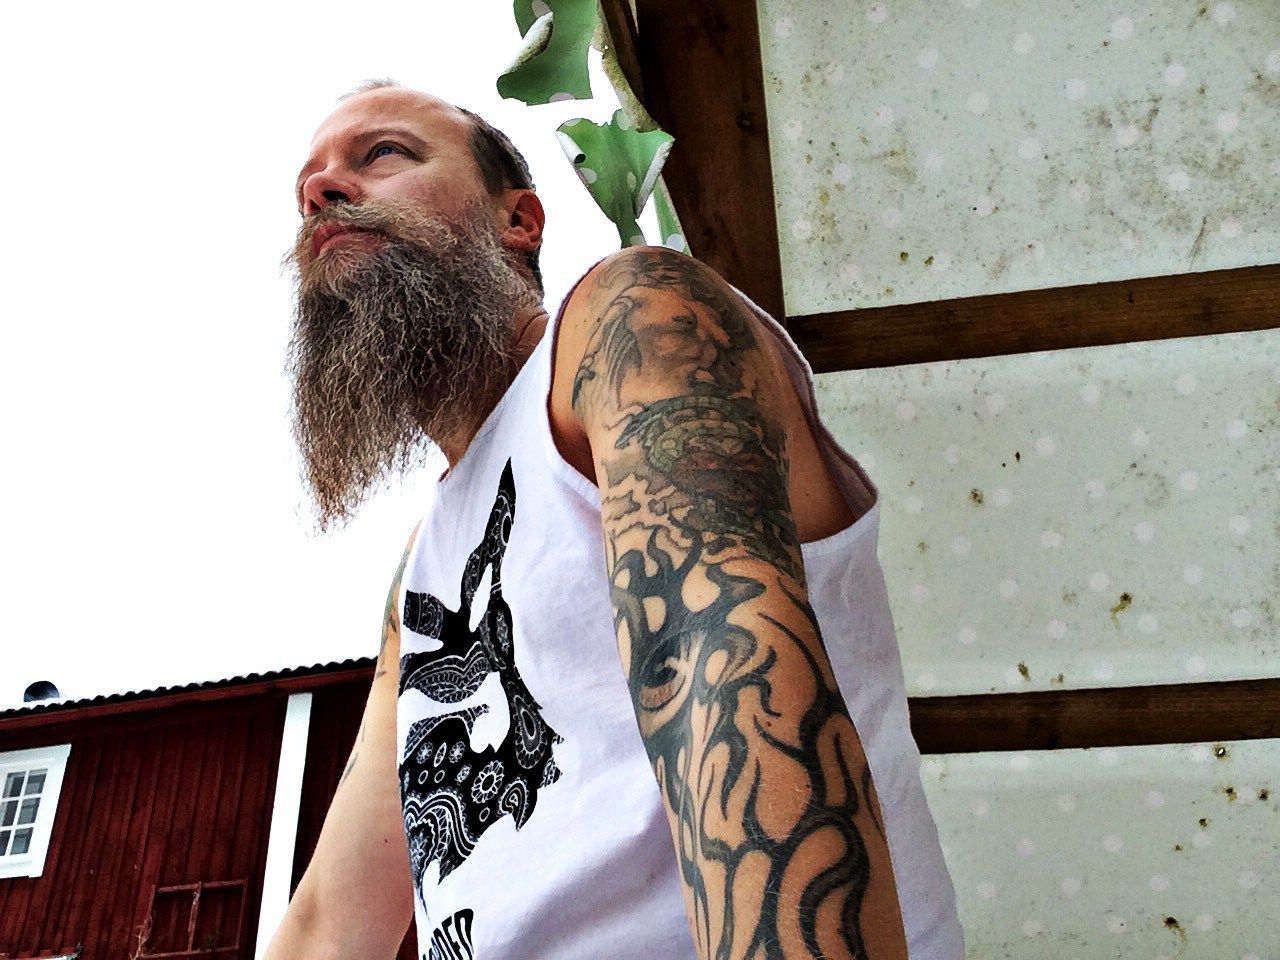 Visit Ratemybeard.se and check out @MOSTPRIMITIVE - http://ratemybeard.se/mostprimitive-15/ - support #heartbeard - Don't forget to vote, comment and please share this with your friends.